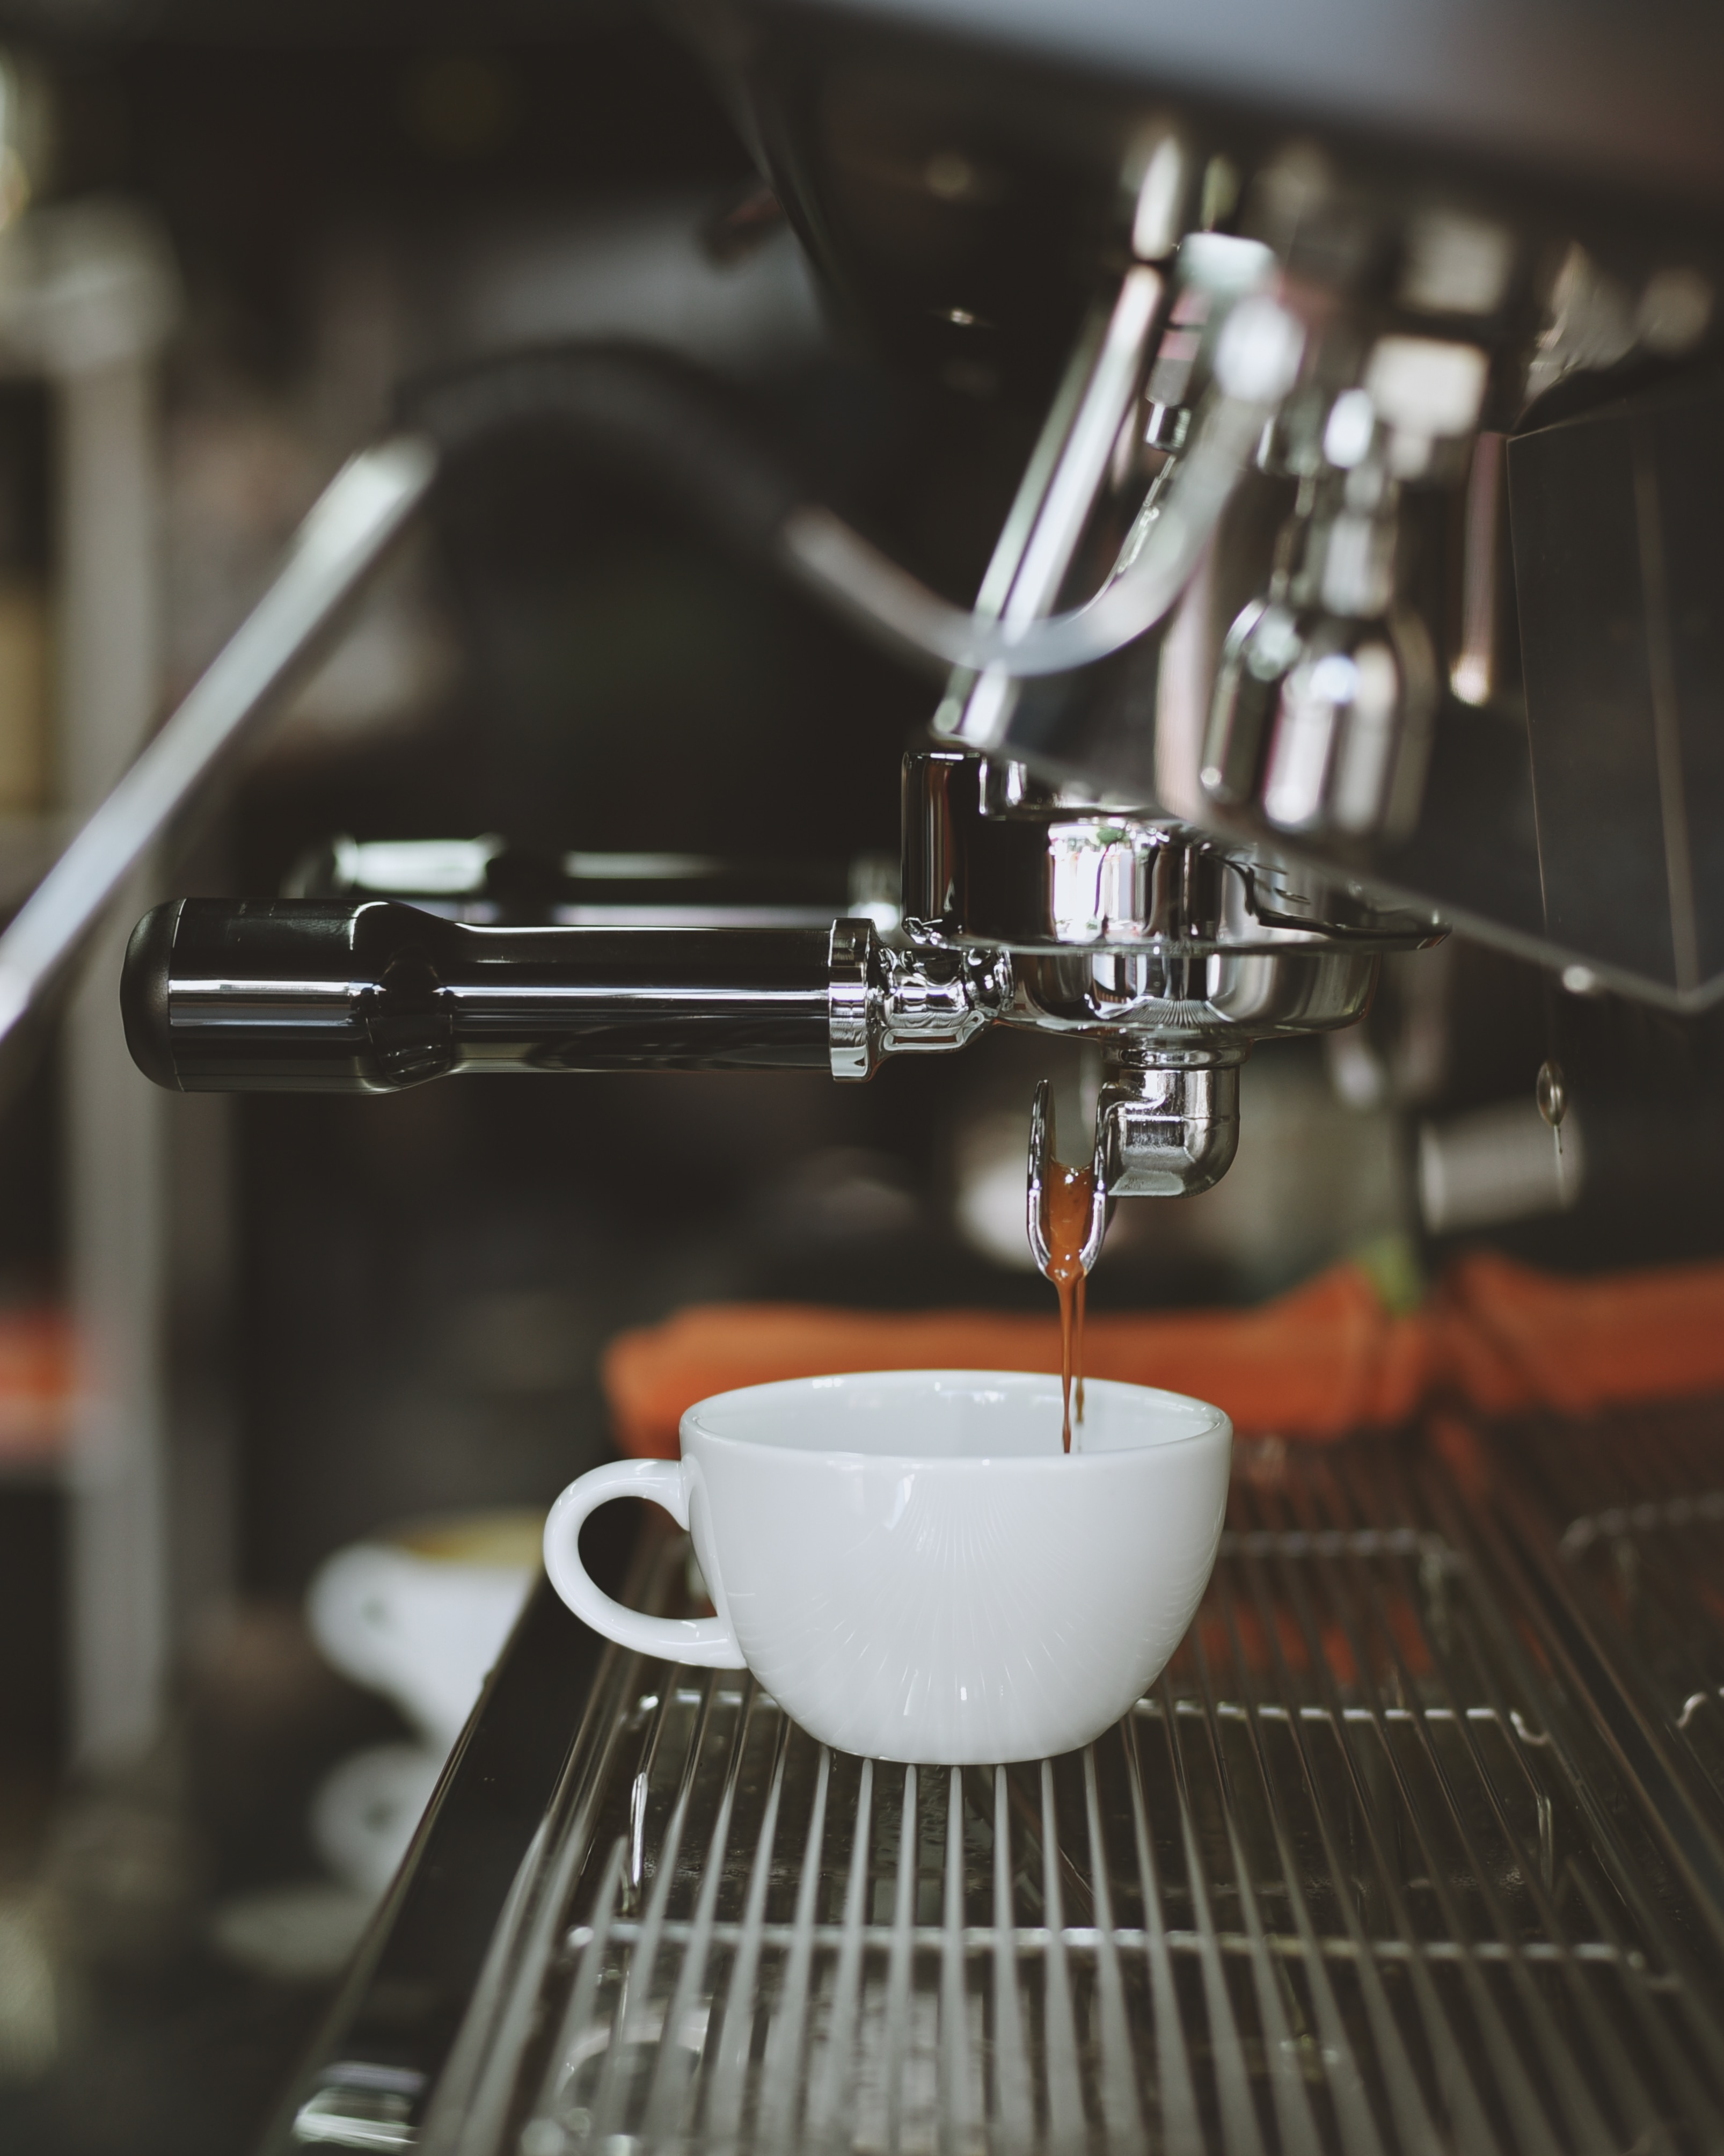 The Office Coffee Machine: Why It Needs To Be Properly Cleaned In Financial Institutions